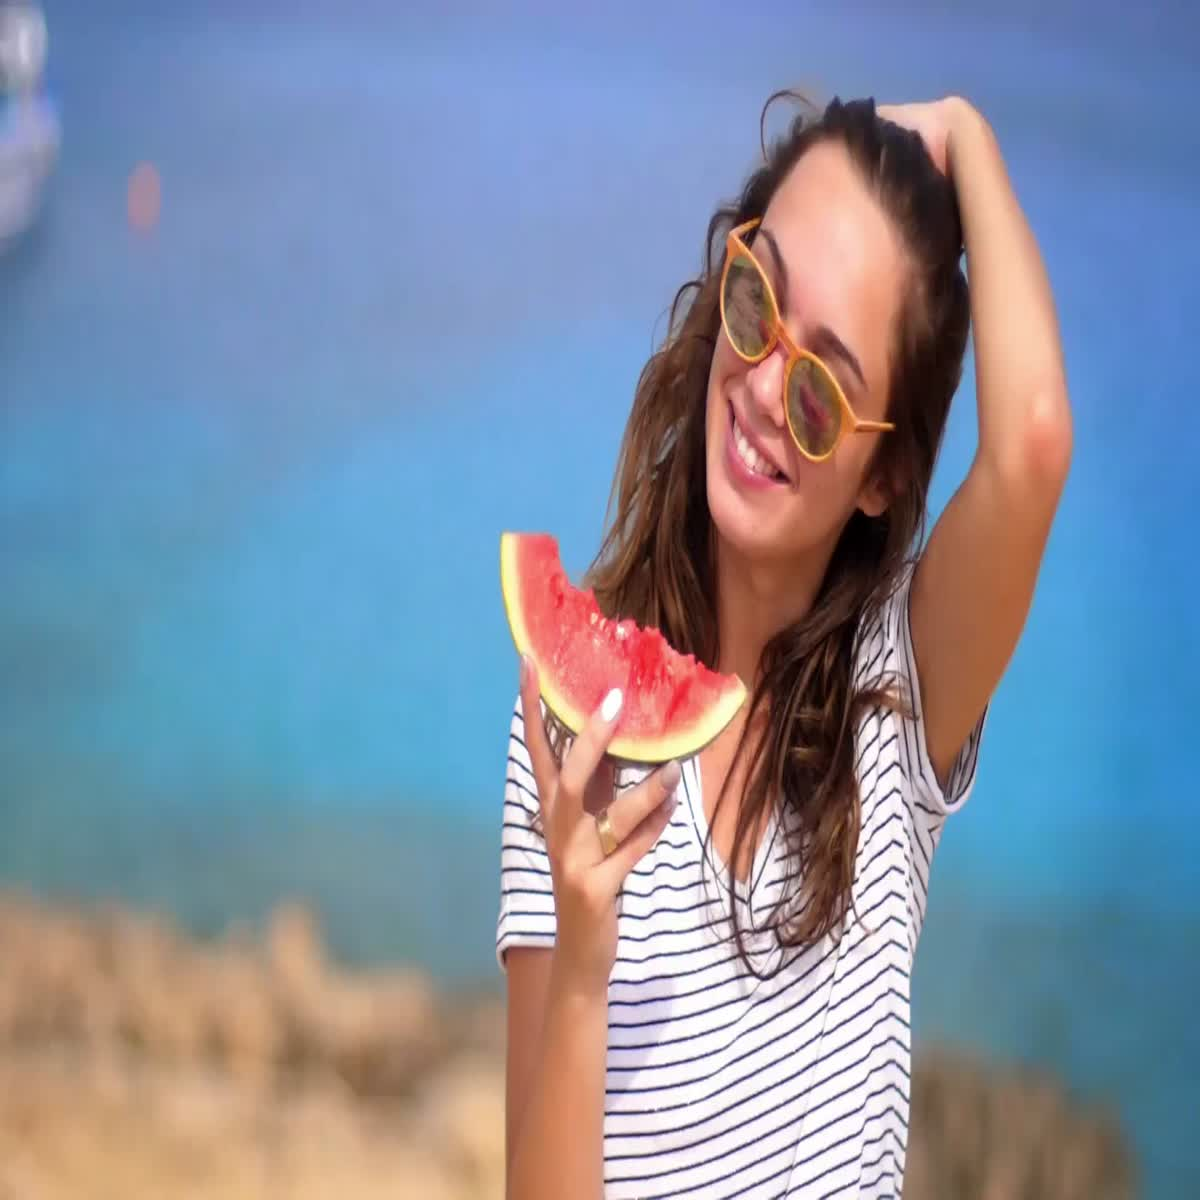 I will create a Sweet Girl Eat & smiling video ad for Facebook or Instagram